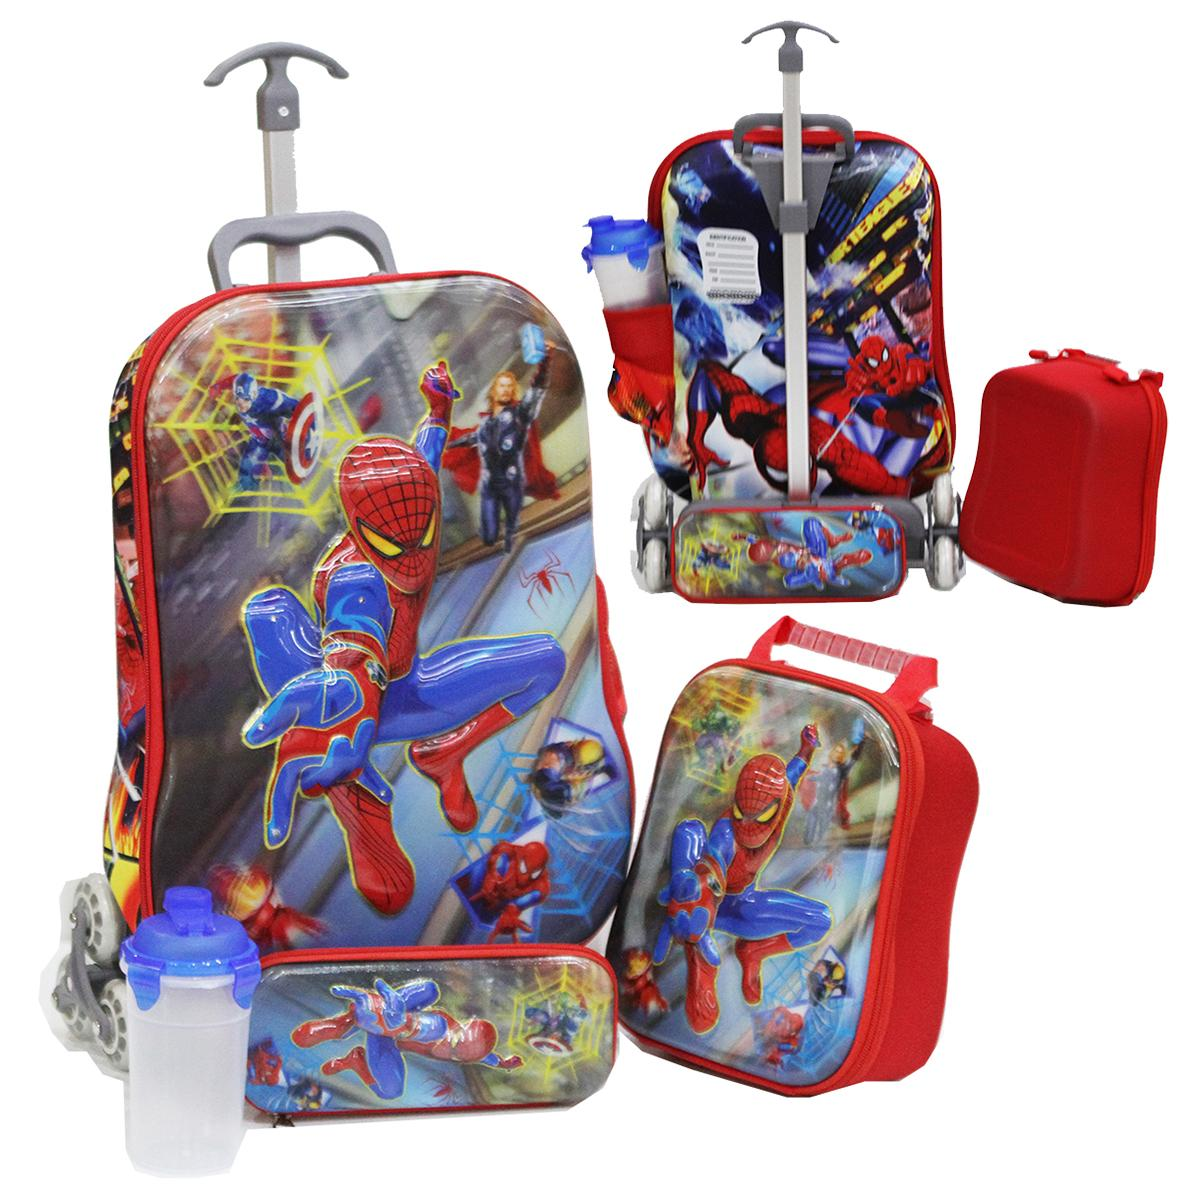 Onlan Tas Trolley Anak Motif 5D Timbul 4in1 Set 6 Roda Import ( KODE MM )  - Merah